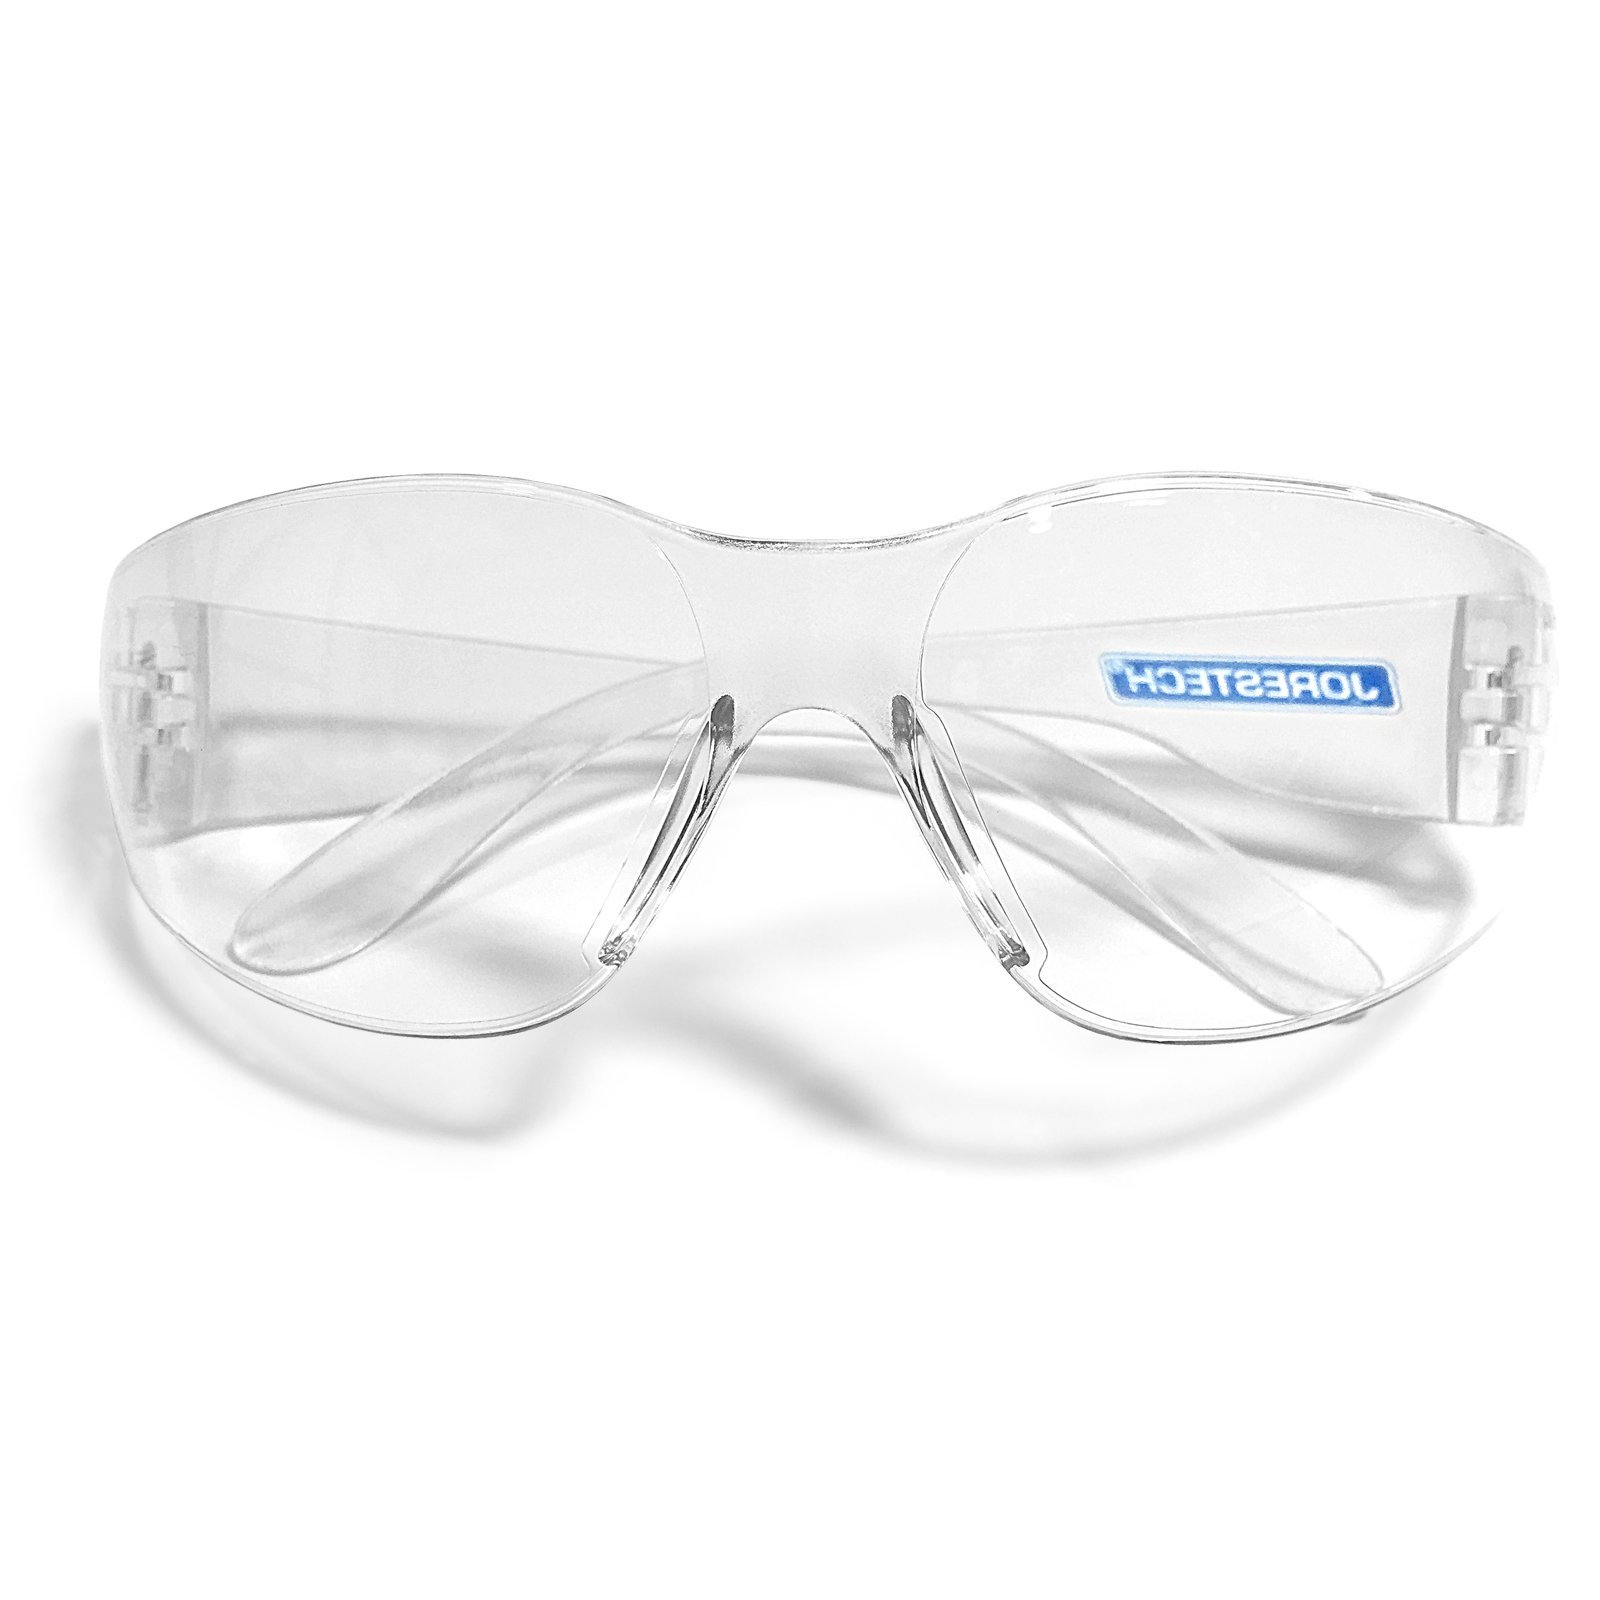 JORESTECH Eyewear Protective Safety Glasses, Polycarbonate Impact Resistant Lens Pack of 12 (Clear) by JORESTECH (Image #3)